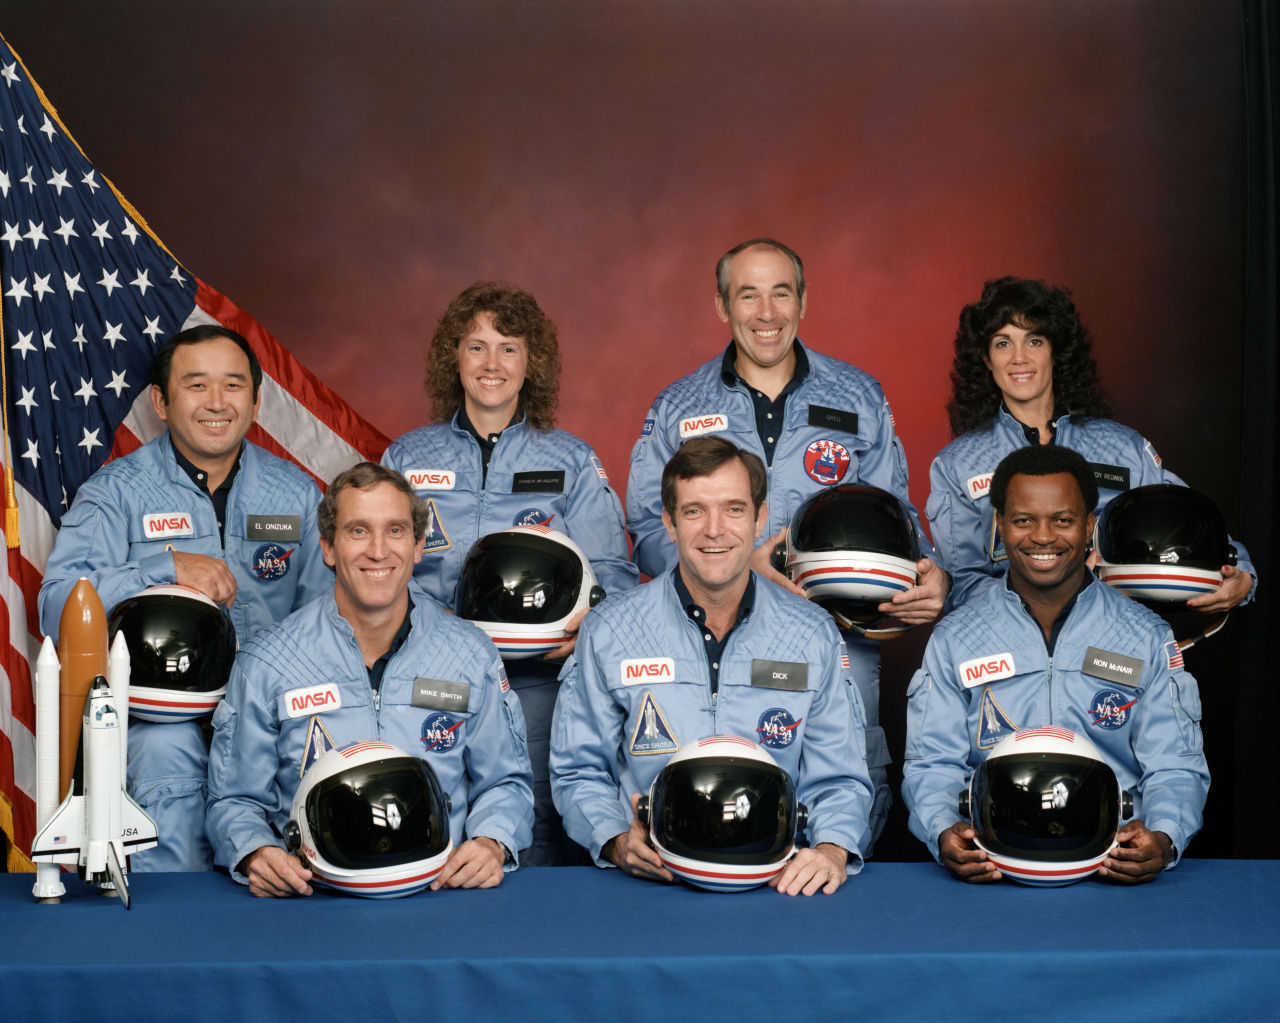 space shuttle challenger impact on america - photo #34